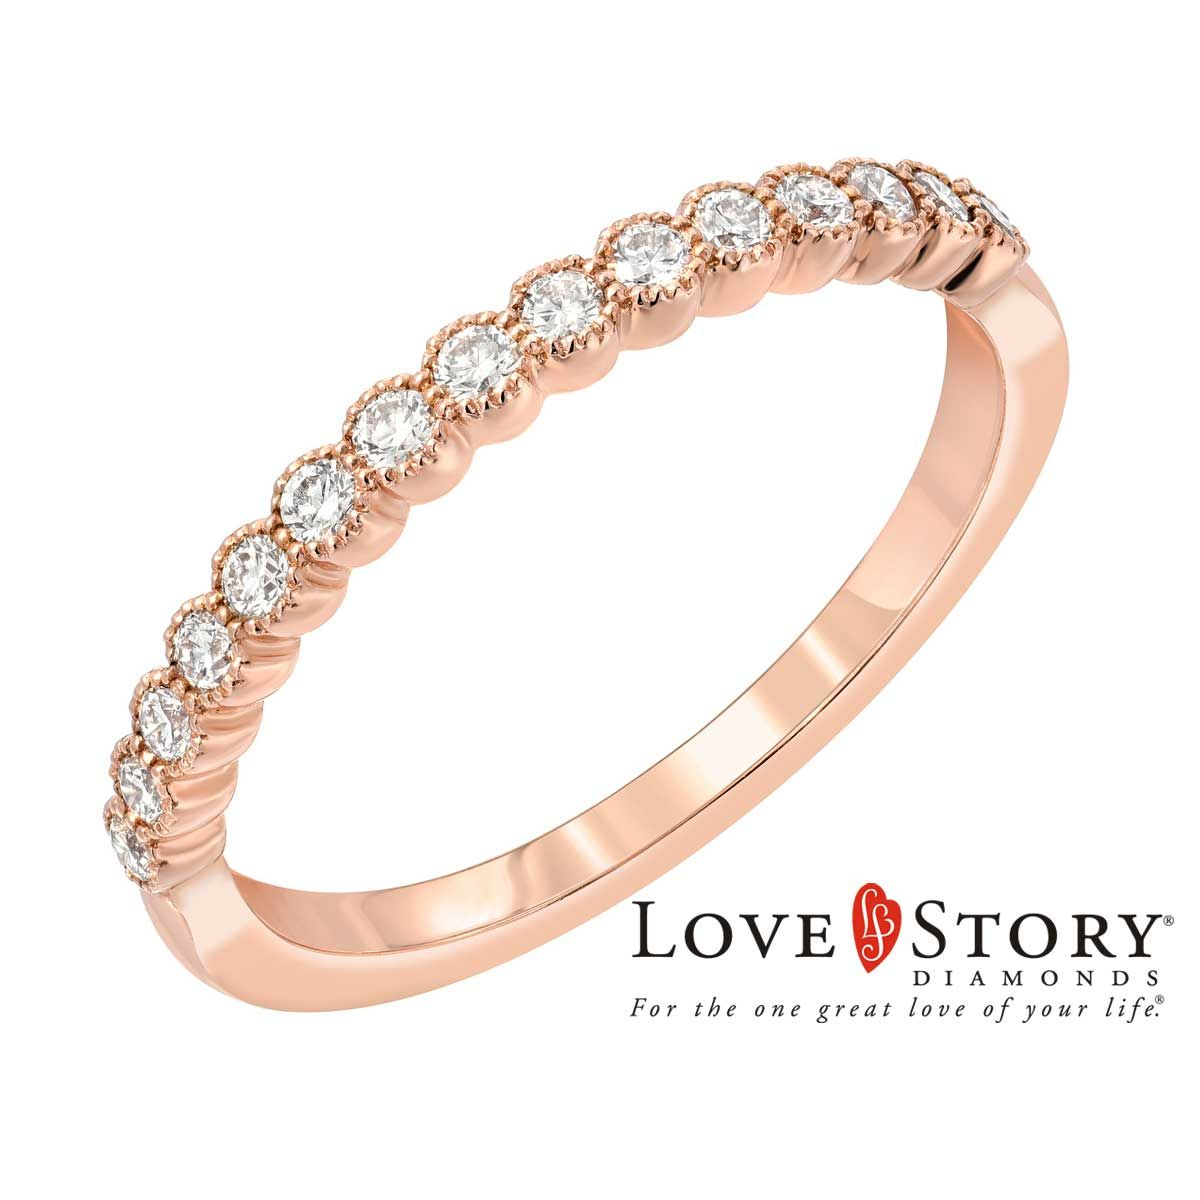 Love Story® Vintage Style Diamond Anniversary Band In 14k Rose Gold, 1/4ctw In Latest Diamond Vintage Style Anniversary Bands In Gold (View 5 of 25)